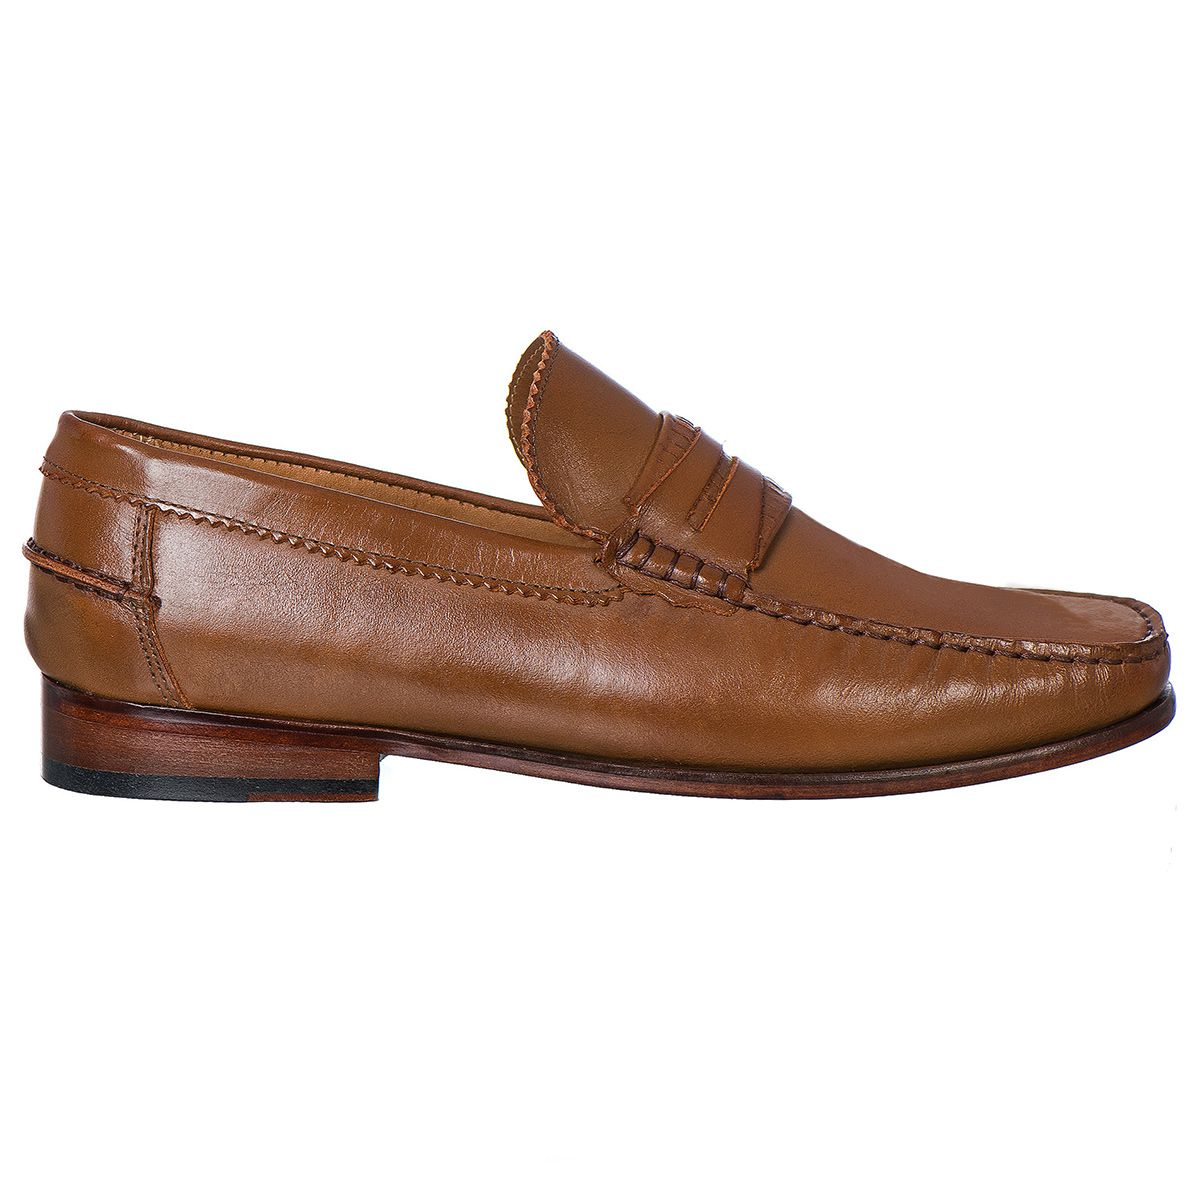 Mocassim Argentino Masculino em Couro Latego Whisky Rocco Lorenzzo - 4465